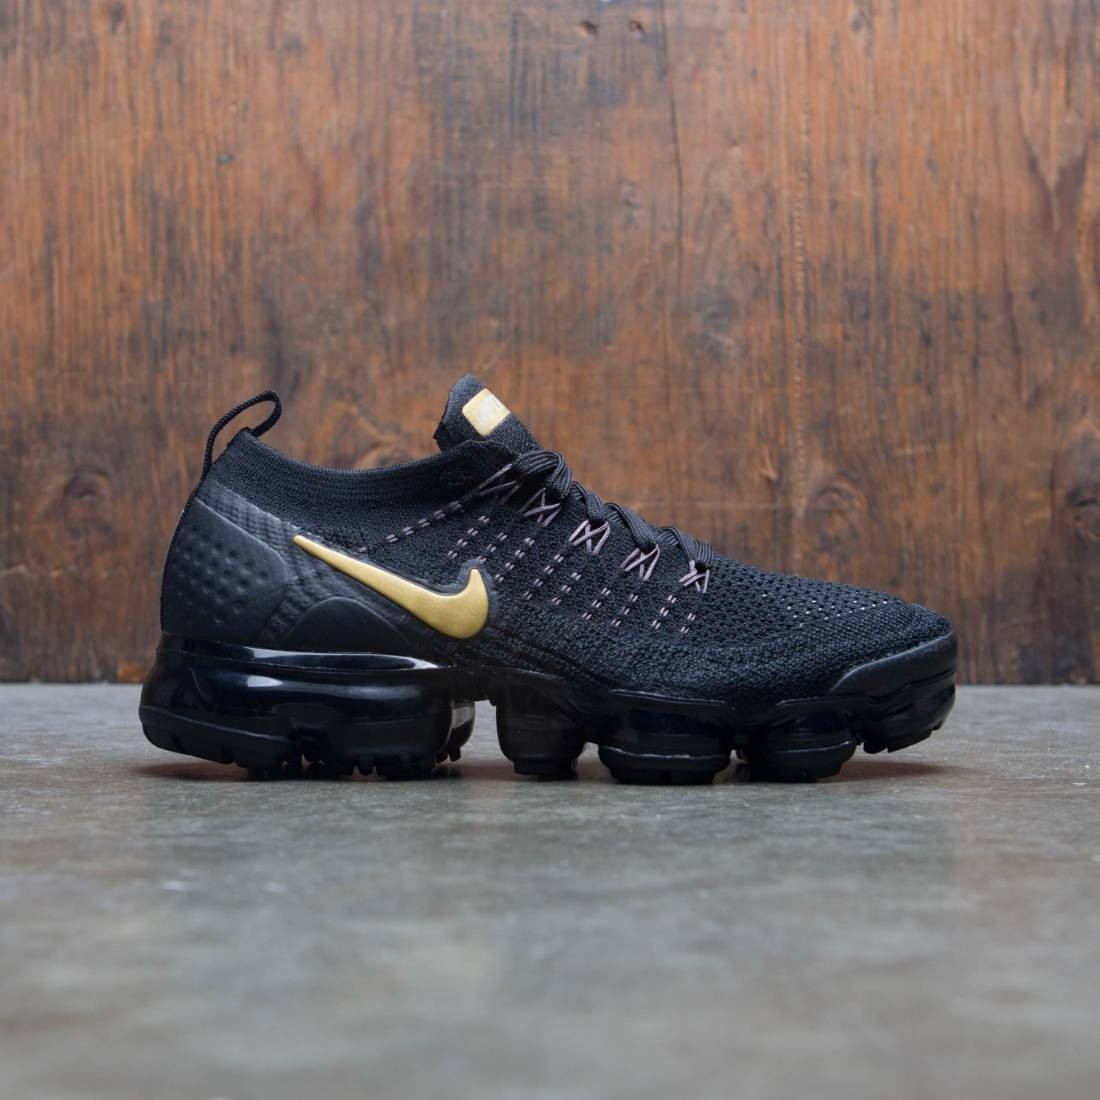 d8eaea9ac6b nike women air vapormax flyknit 2 black metallic gold mtlc platinum